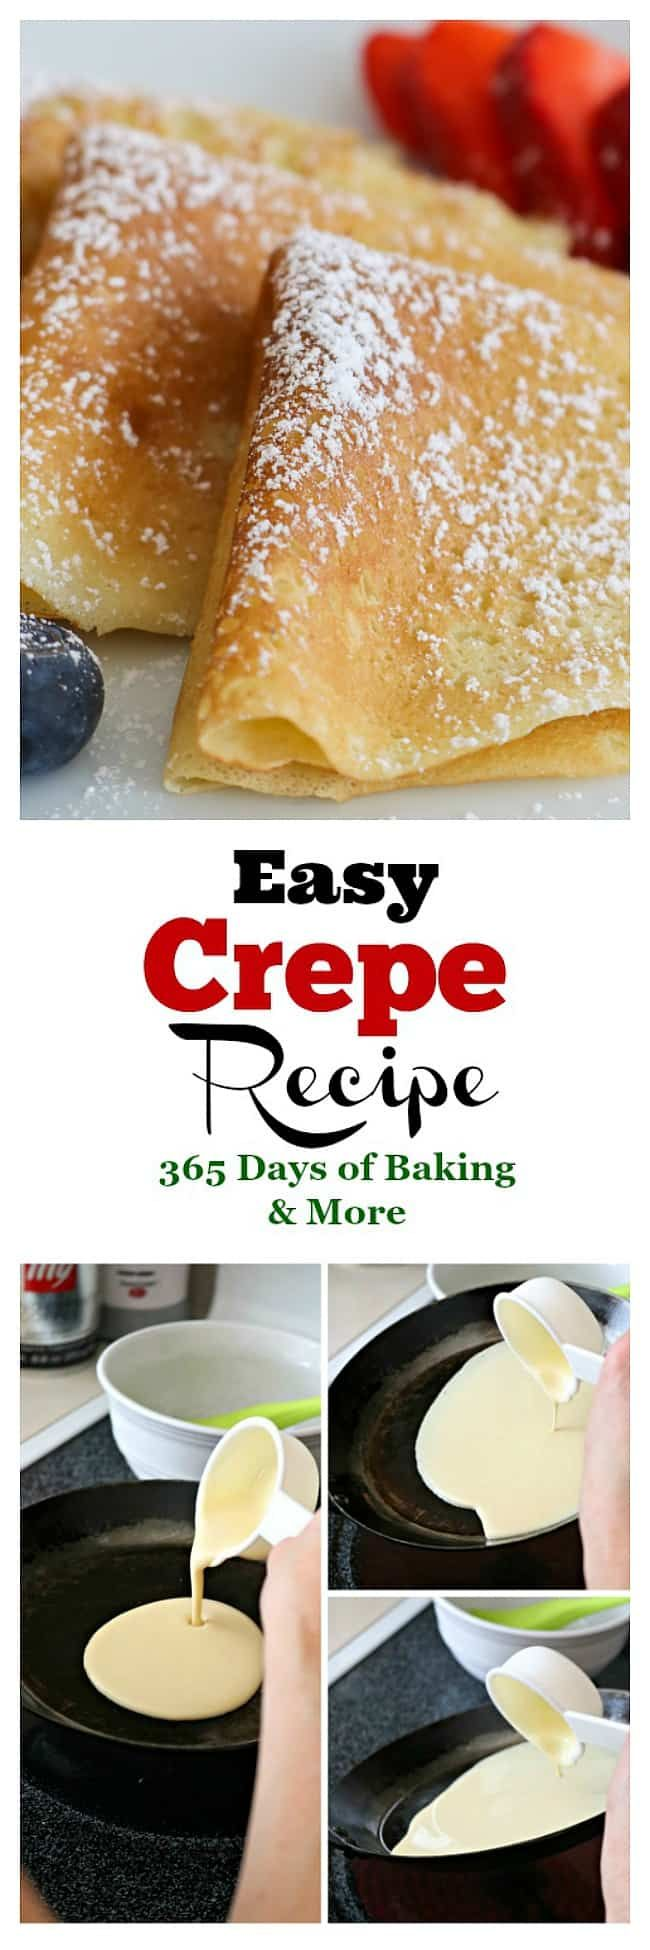 This Easy Sweet Crepe Recipe is made with flour, eggs, milk and a little sugar. These thin French crepes or pancakes can be enjoyed a variety of ways.